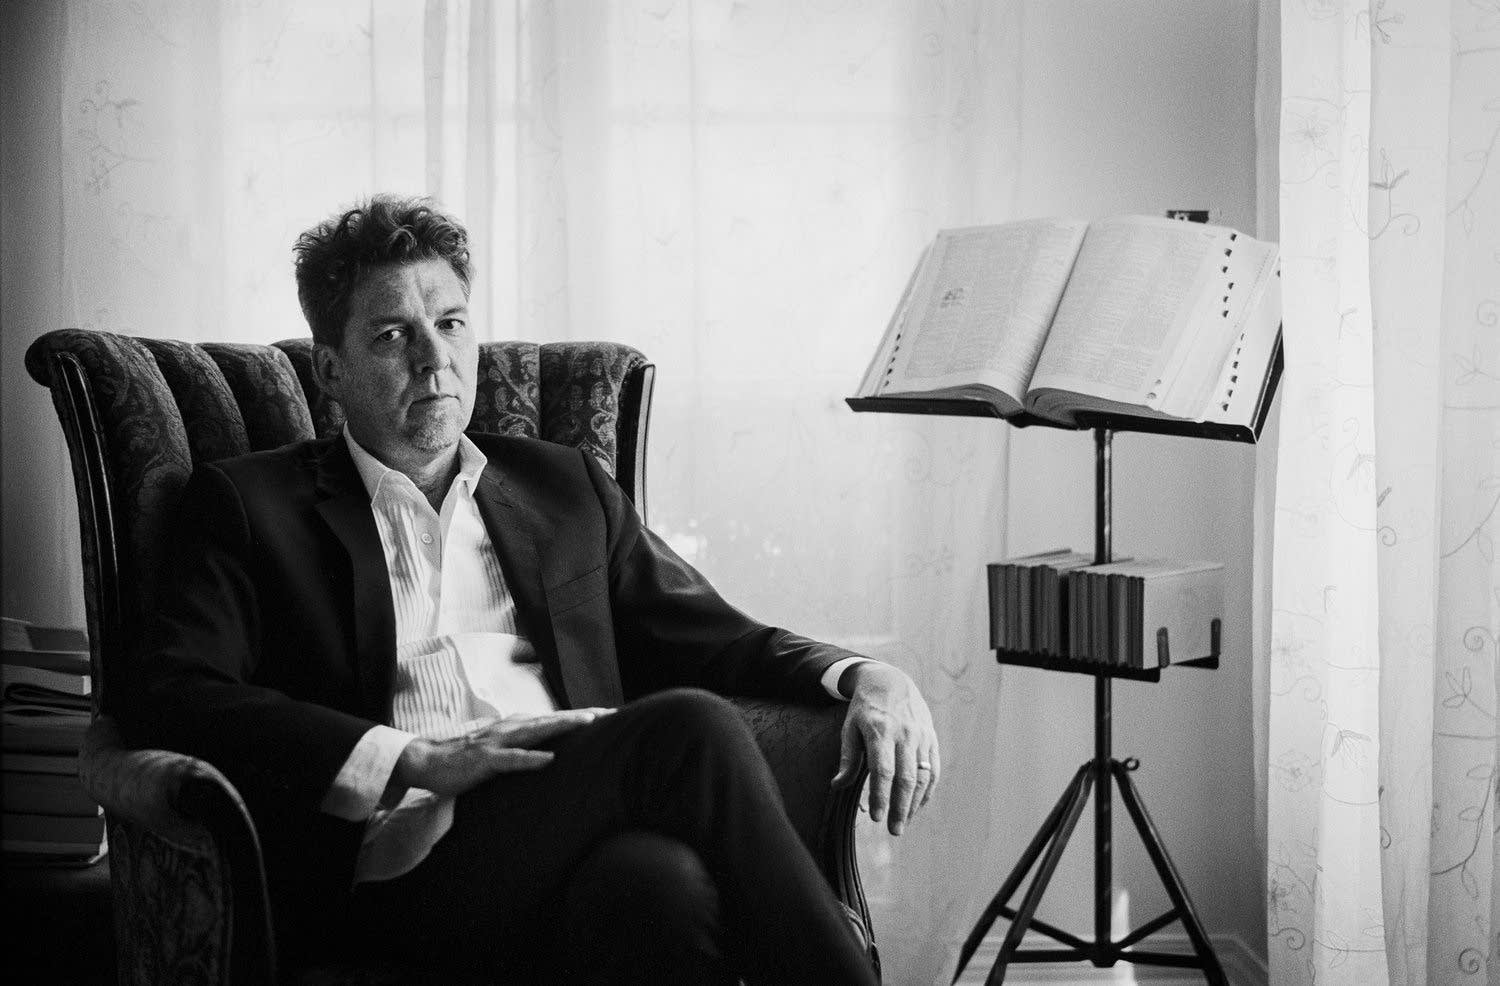 Singer-songwriter and producer Joe Henry